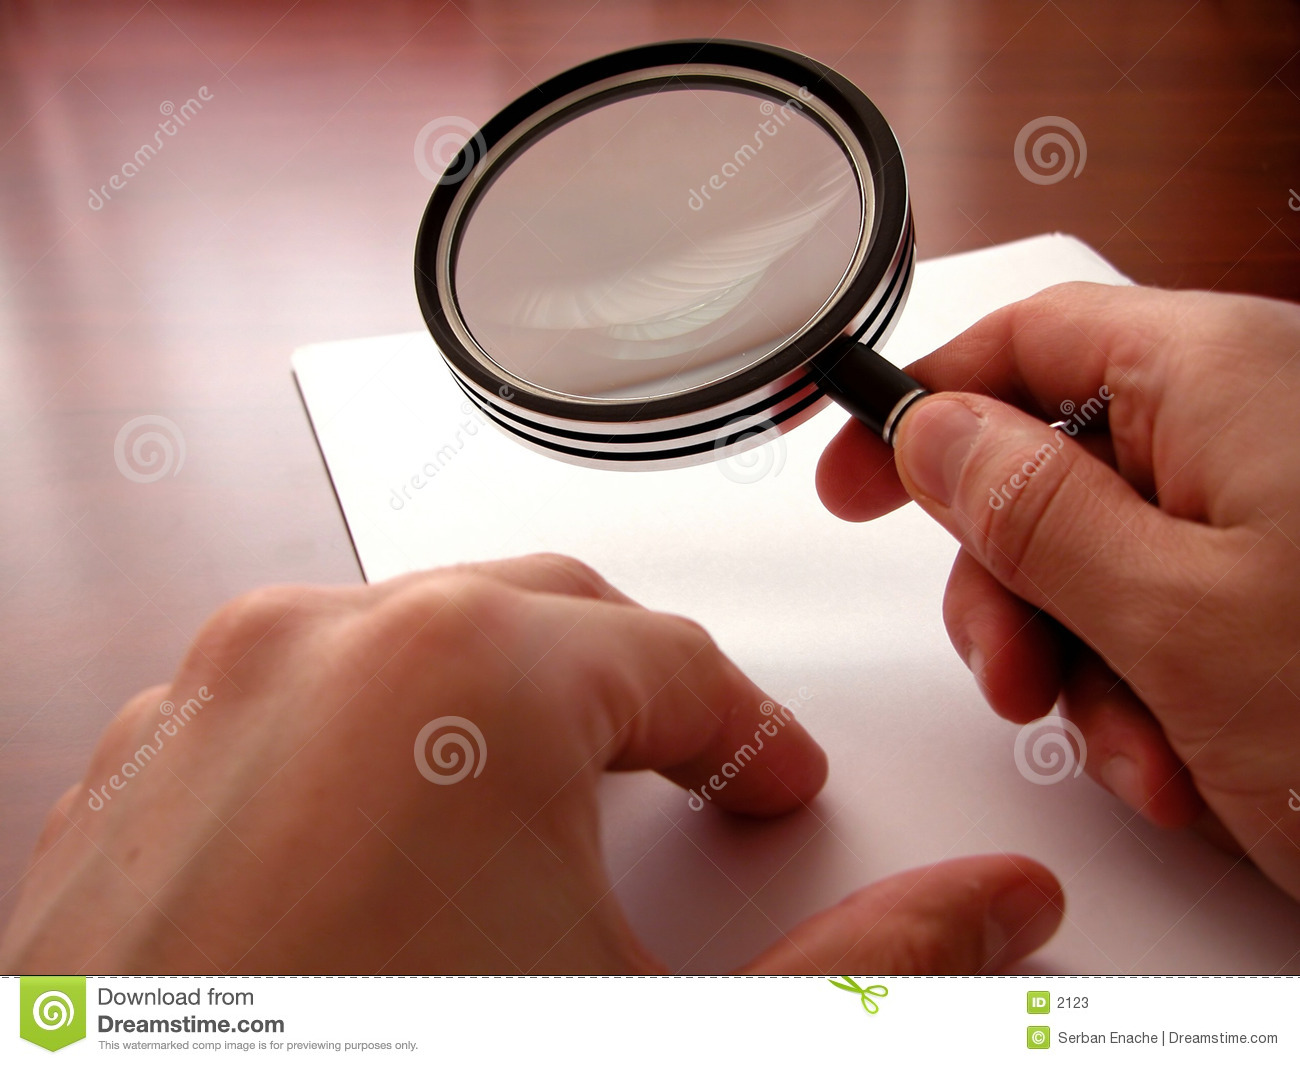 Holding a magnifying lens